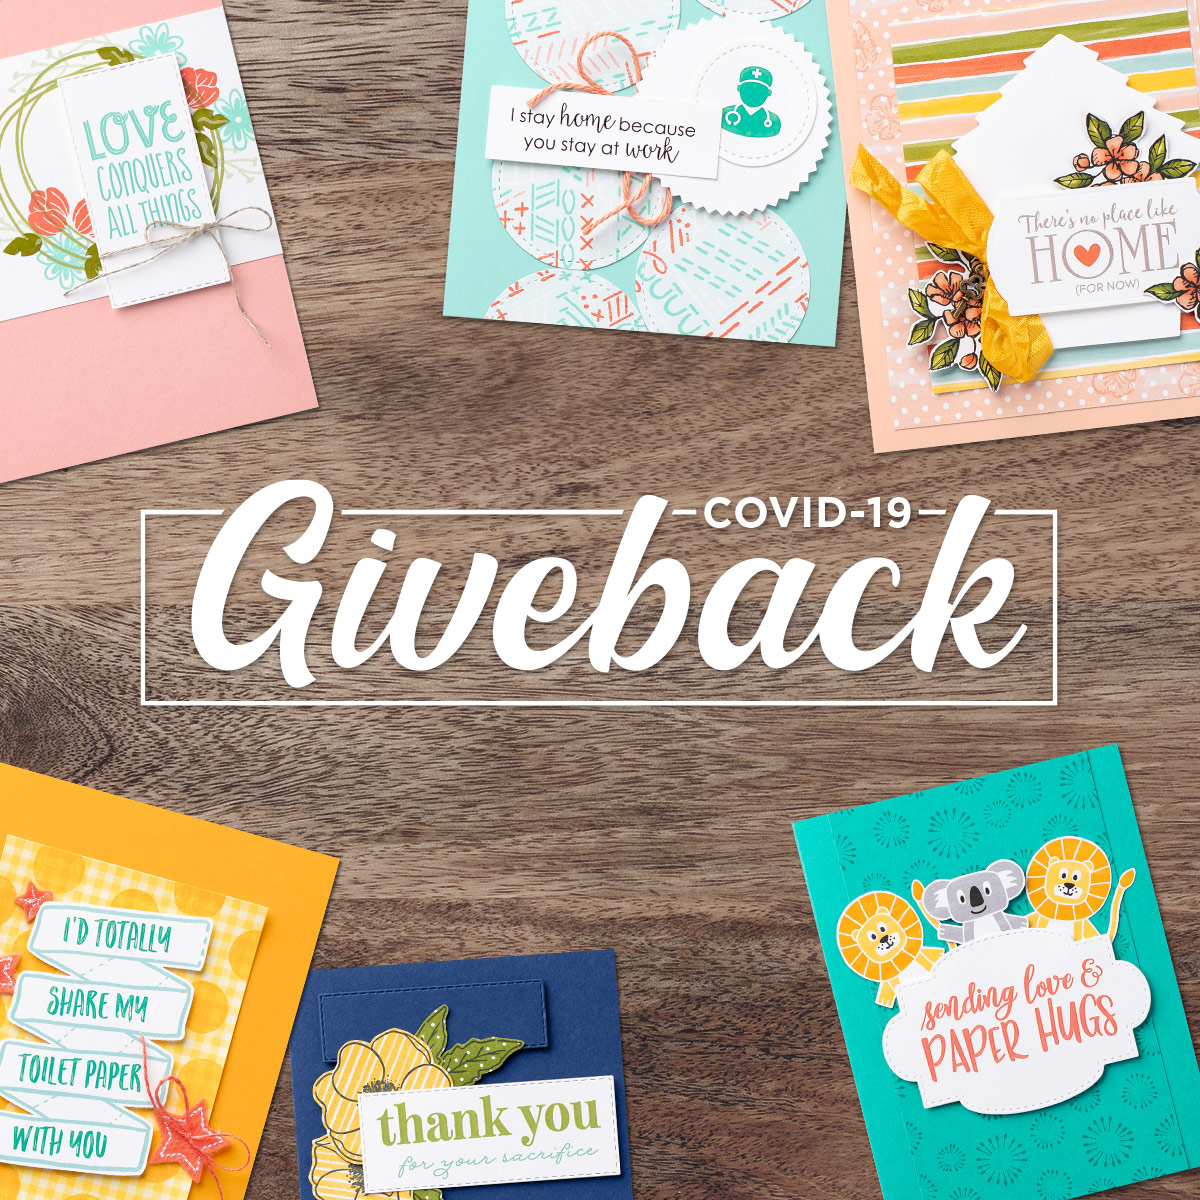 COVID-19 Product Giveback